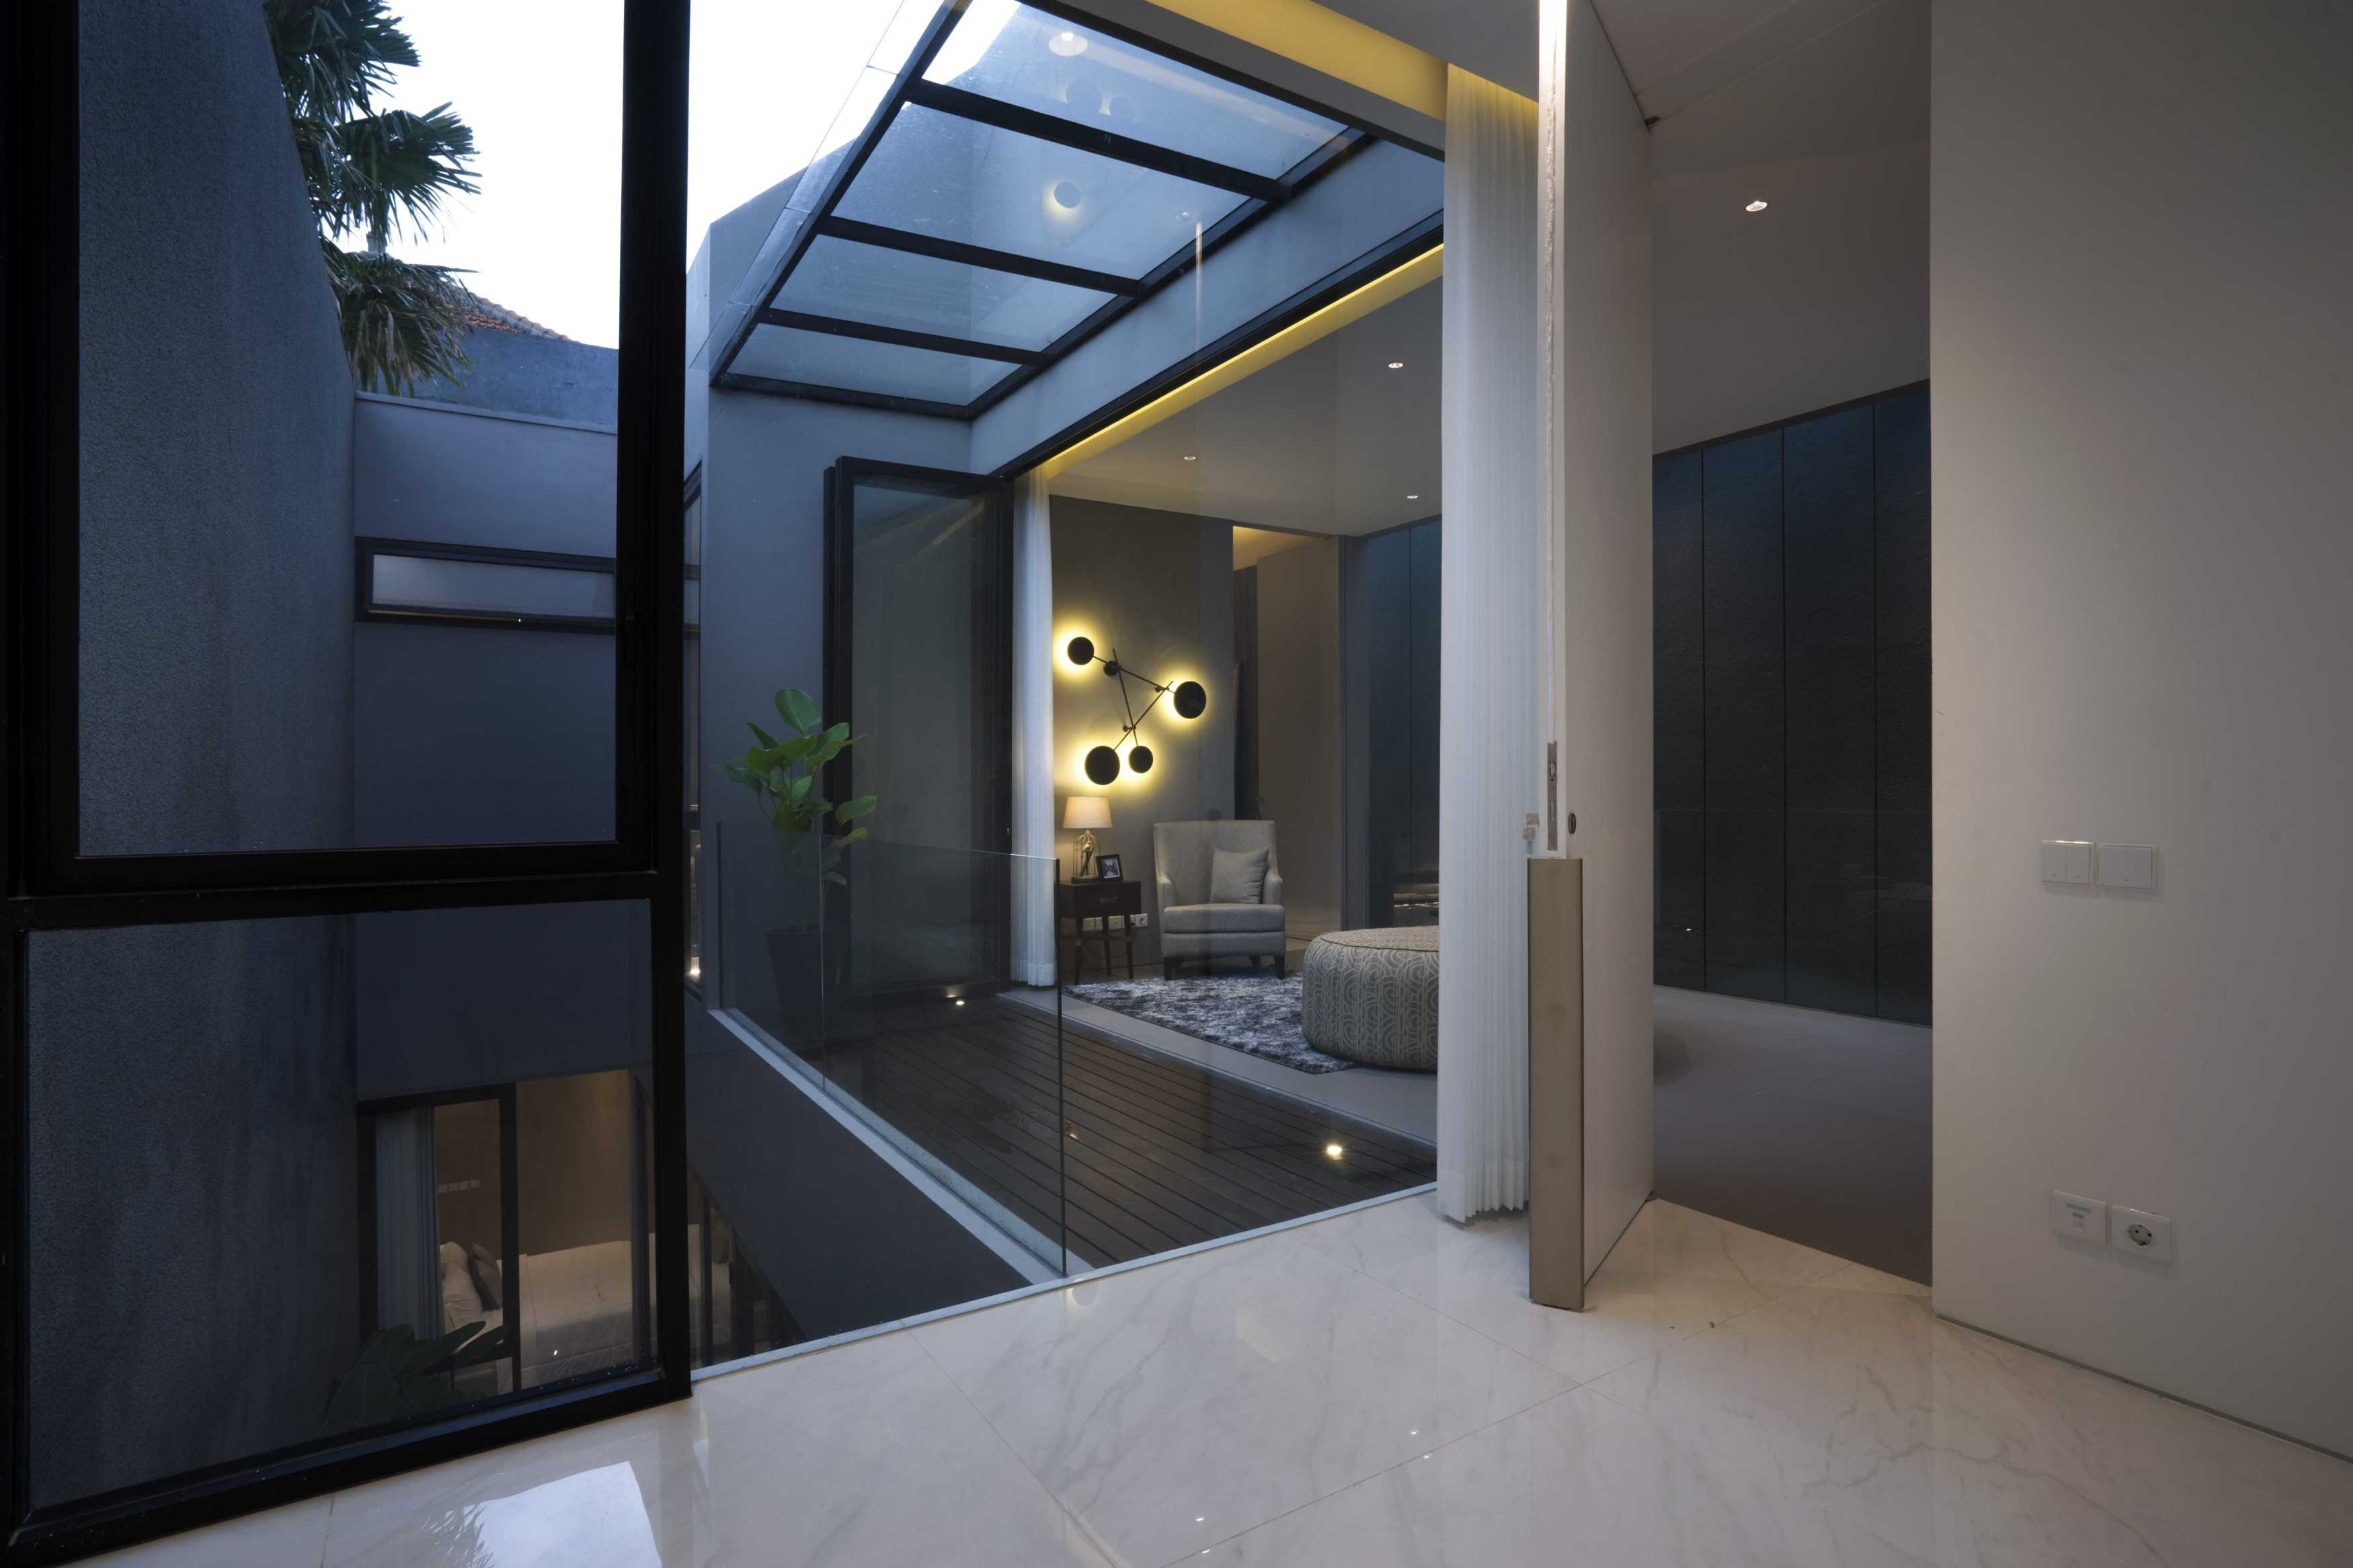 Simple Projects Architecture 'hhh' House Surabaya, Kota Sby, Jawa Timur, Indonesia  Simple-Projects-Architecture-Hhh-House   75032